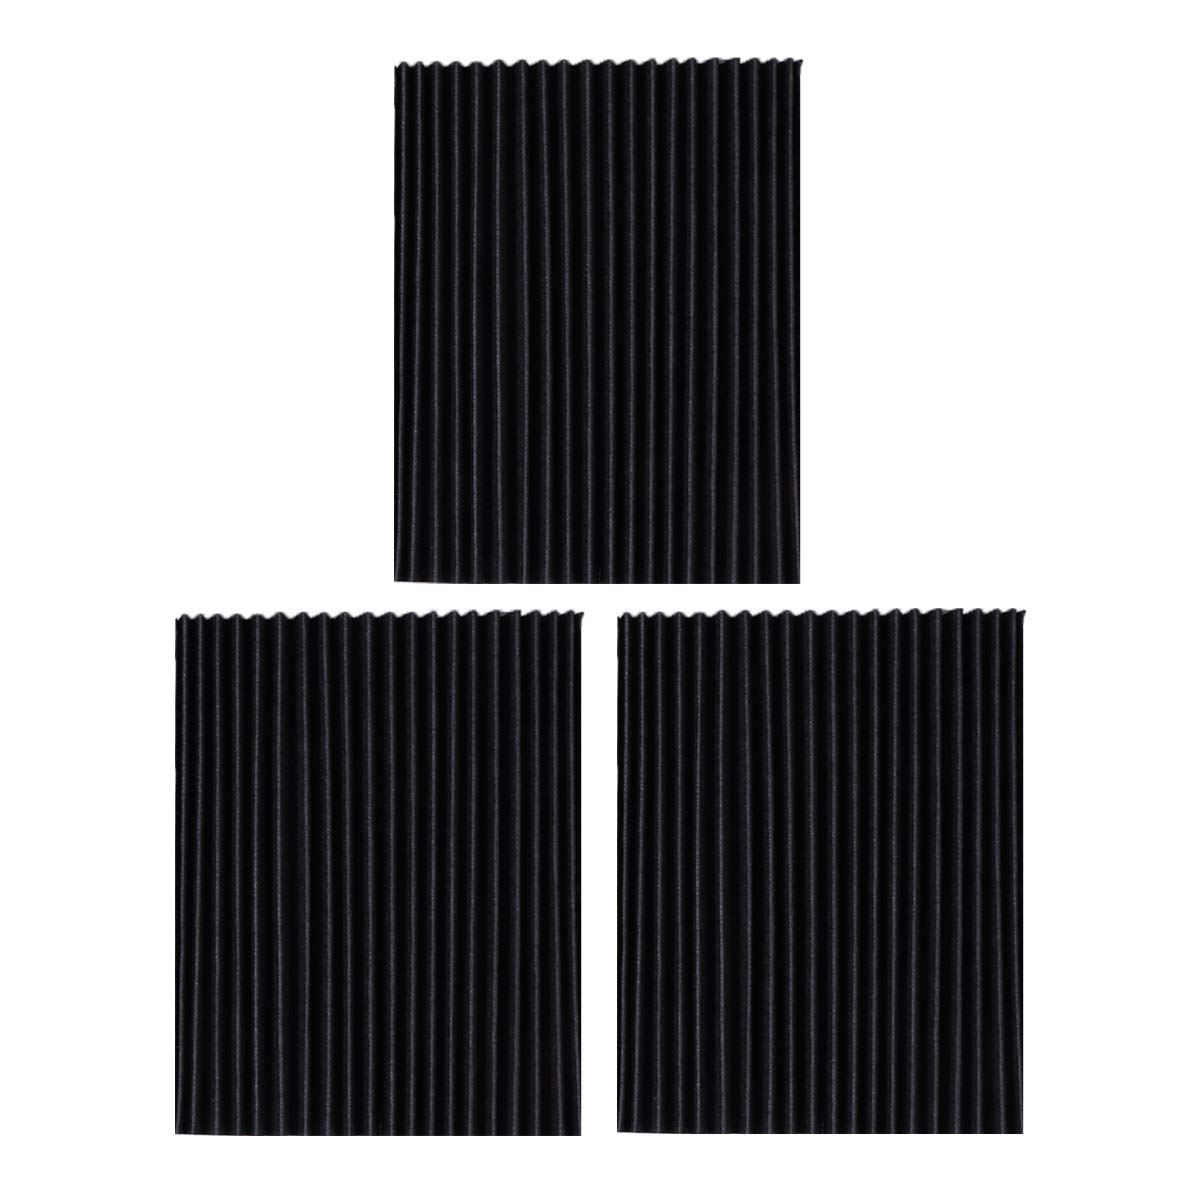 BESTOMZ 3 PCS Refrigerator Air Filters Replacement for Frigidaire PAULTRA